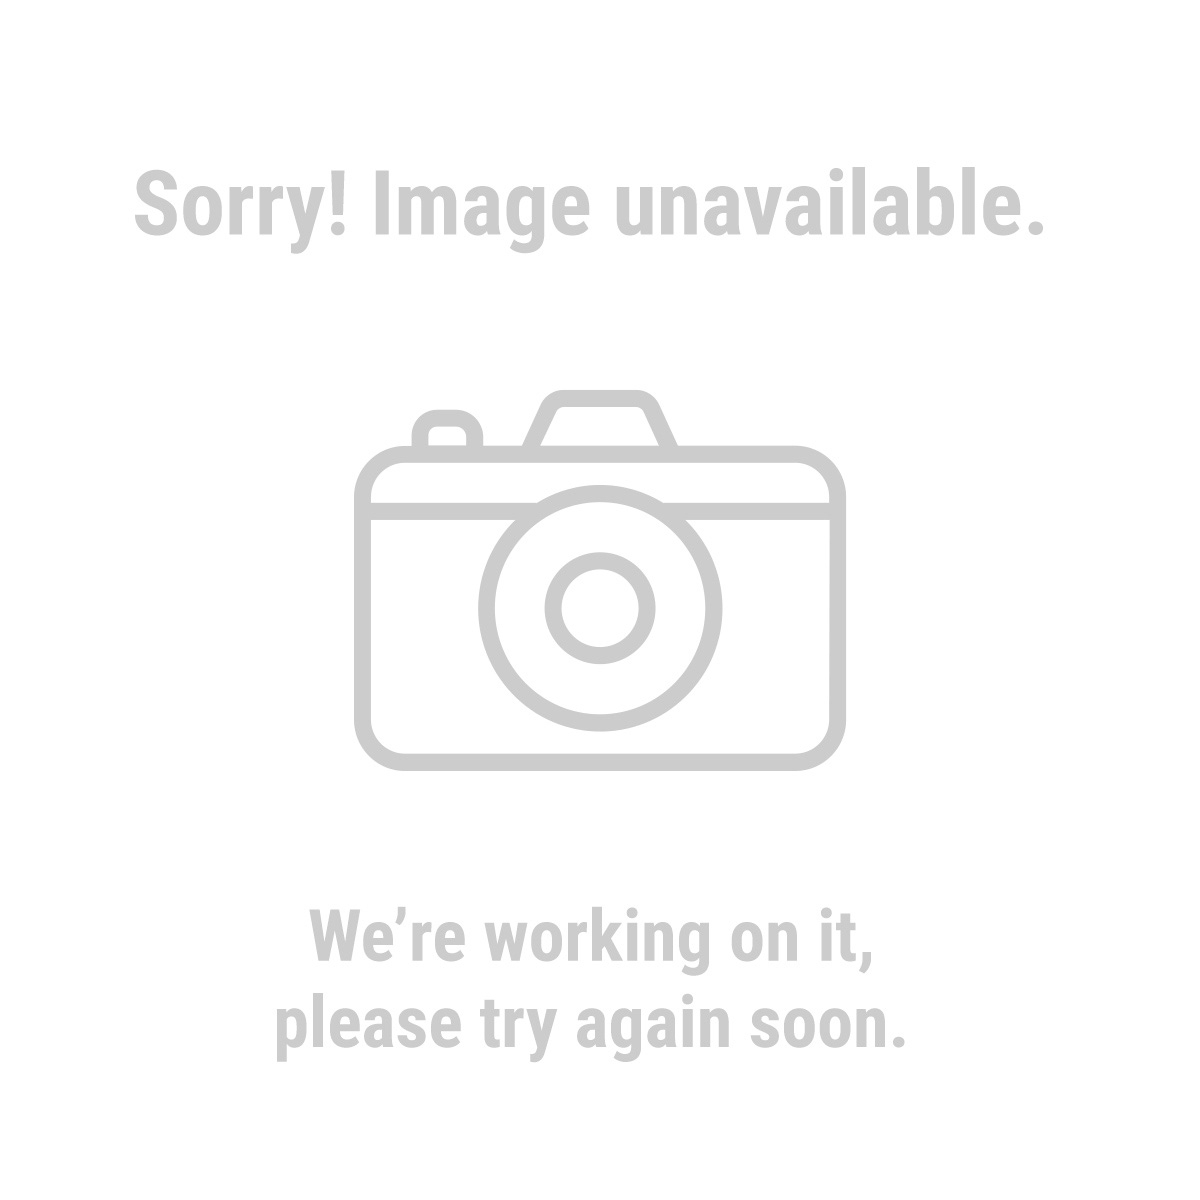 Greenwood® 63338 5/8 in. x 50 ft. Heavy Duty Garden Hose